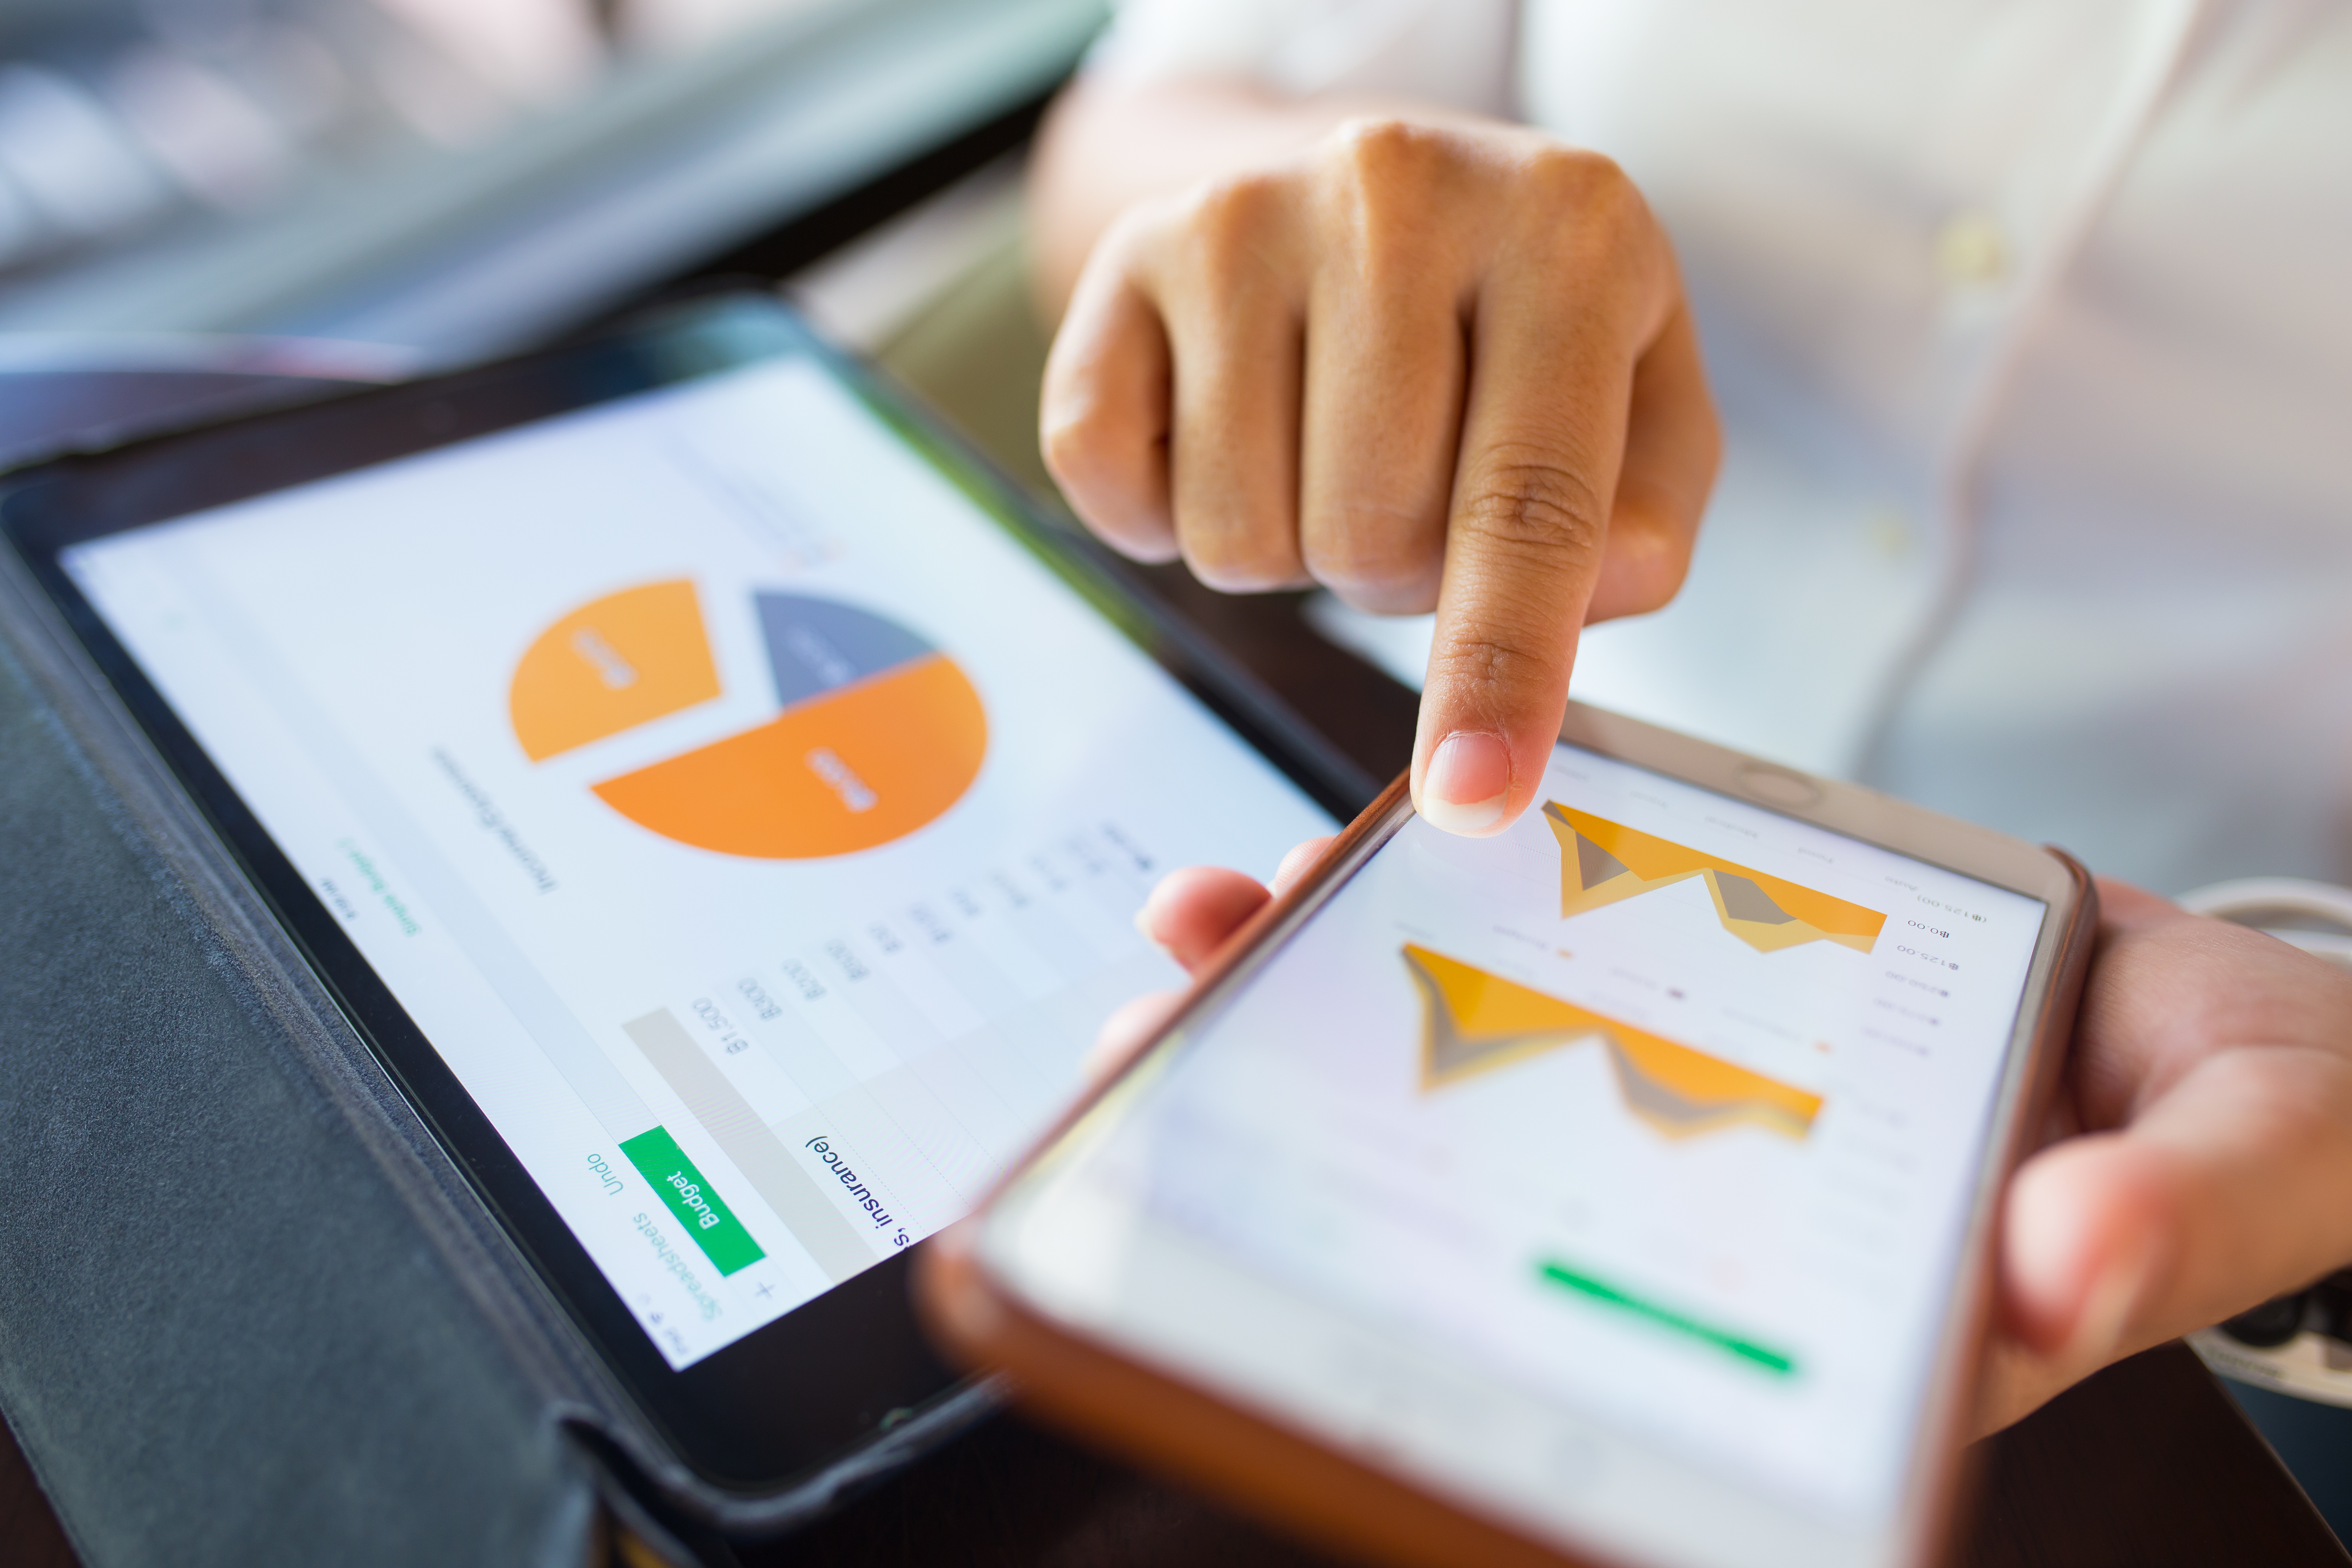 Contract Modeling Software or Microsoft Excel: Which is Better?